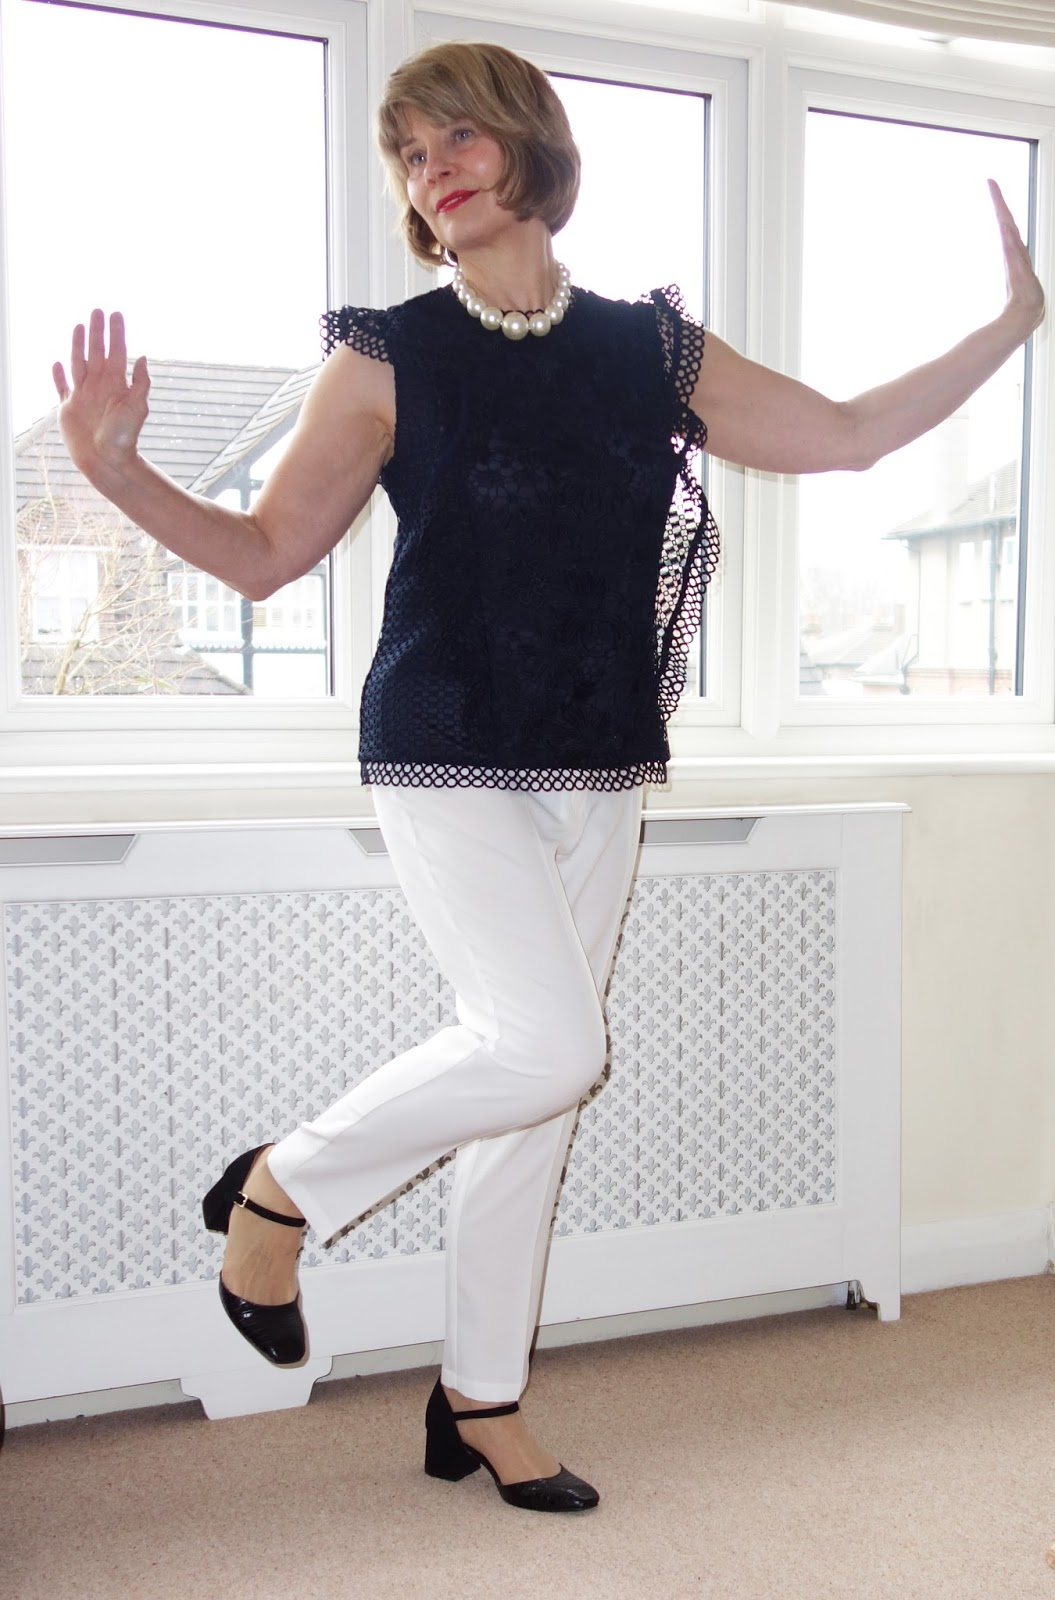 Gail Hanlon UK blogger in navy lace top and white trousers